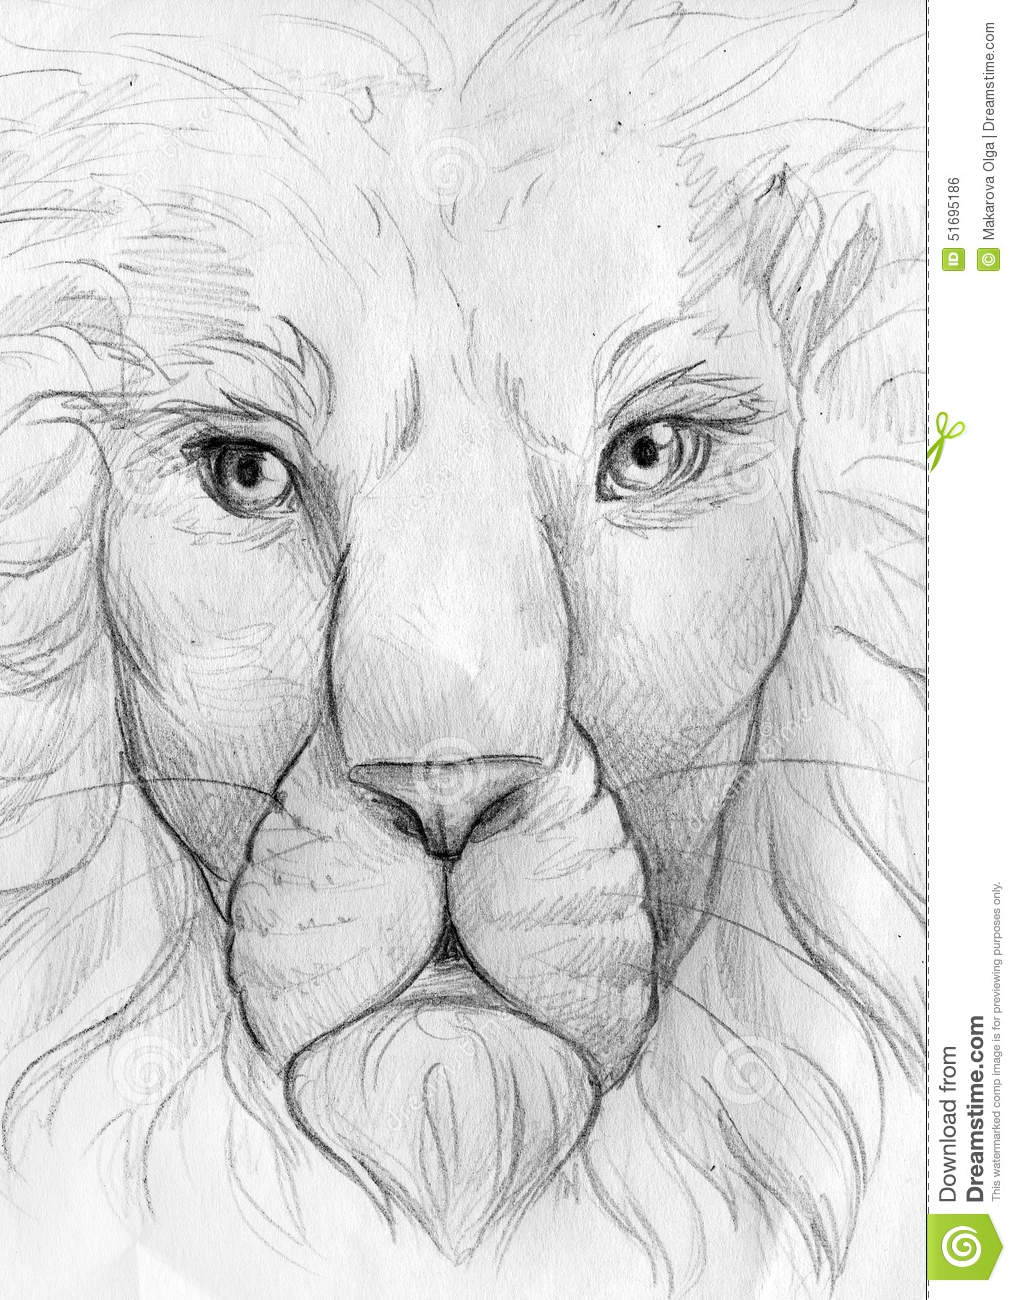 Hand drawn pencil sketch of an old wise lion king of the beasts